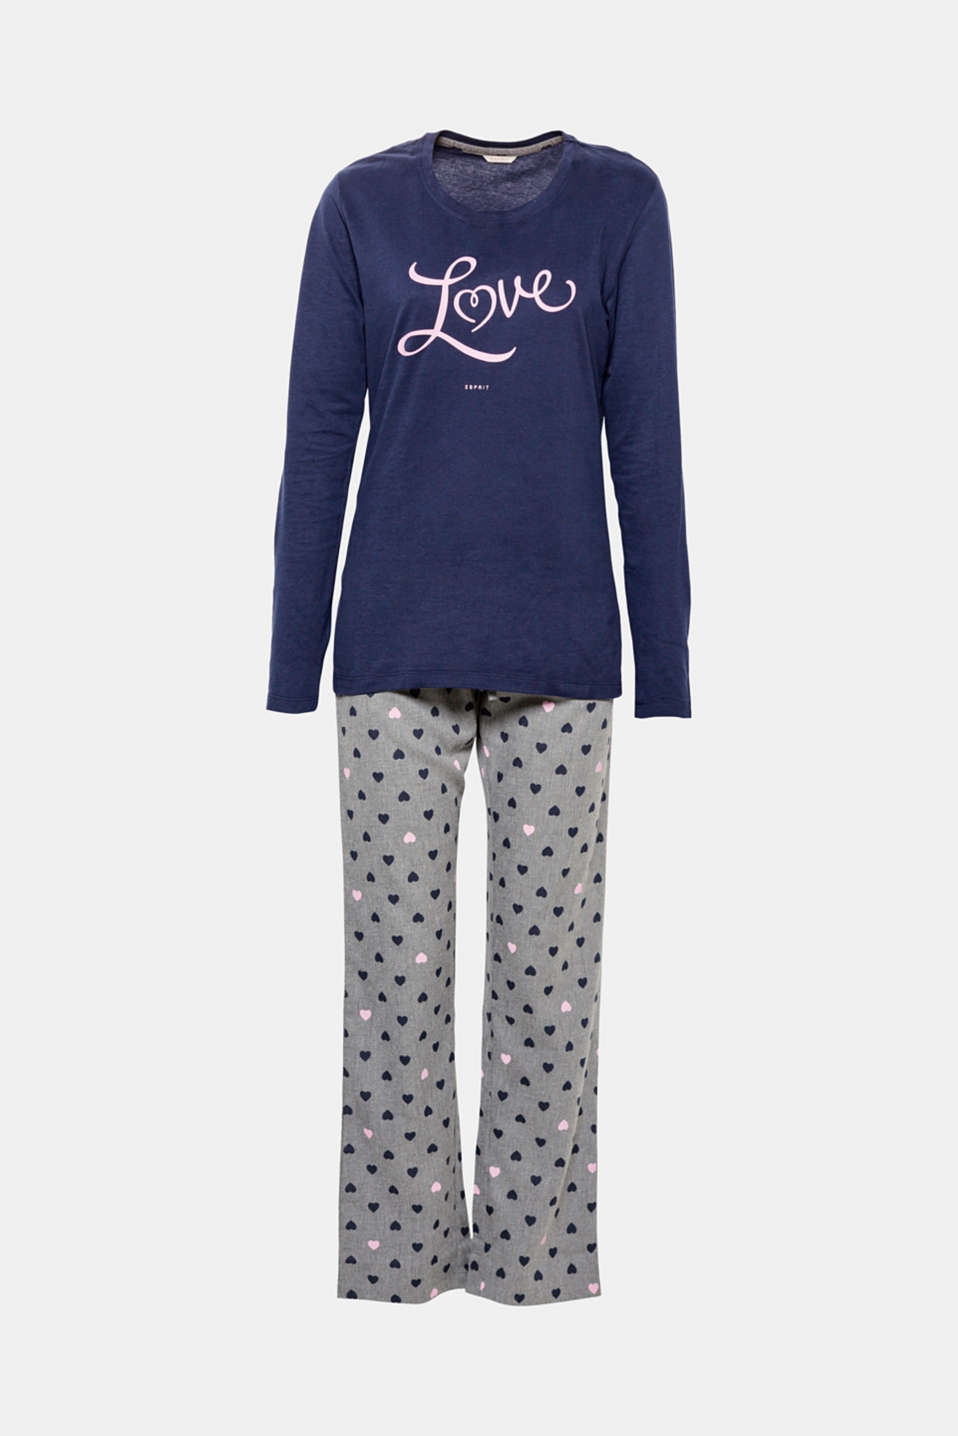 You will love it! These pyjamas have a lot of heart – with the decorative all-over print on the bottoms as well as with the distinctive Love statement on the front.